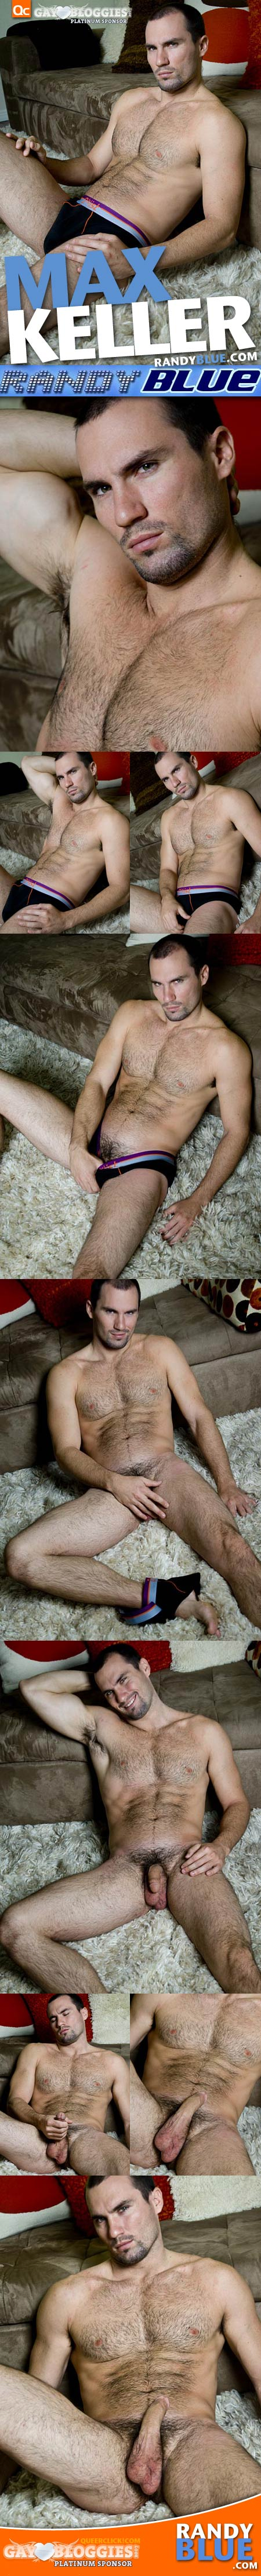 Max Keller(2) at RandyBlue.com